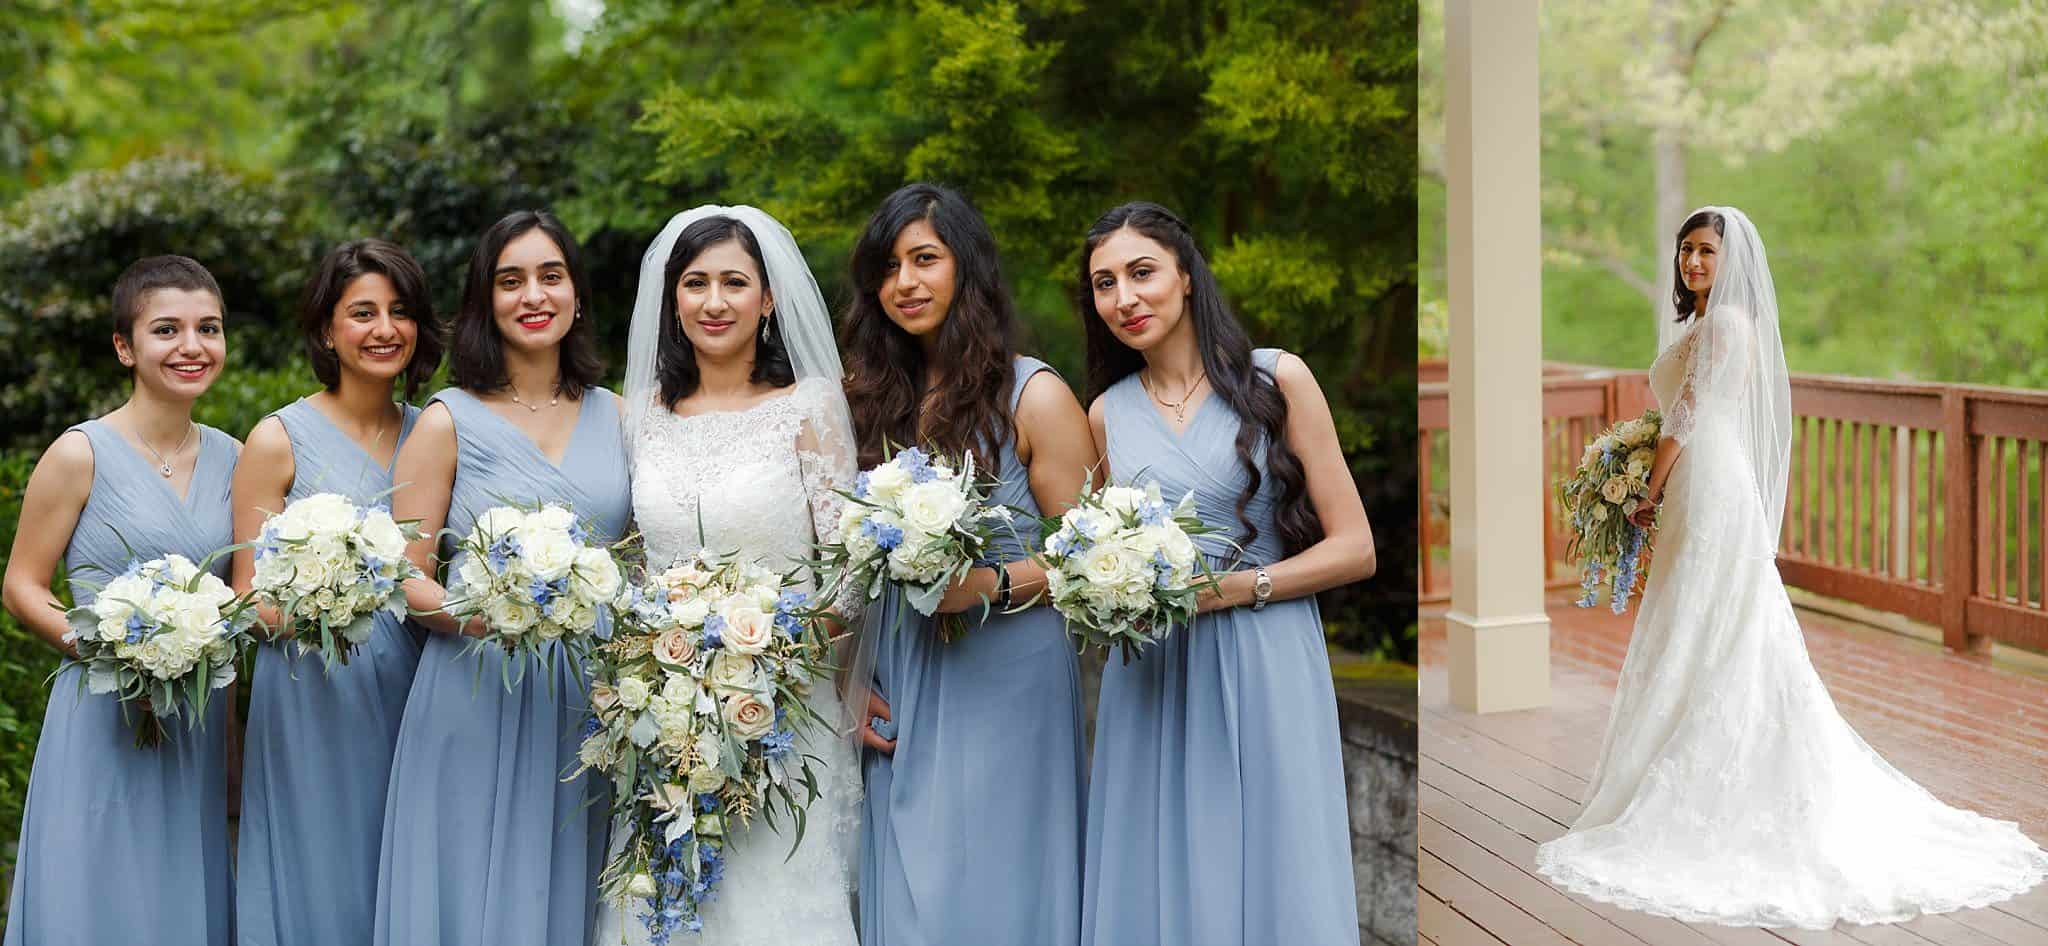 Two photos. Left photo: Bridesmaids with Bride in Blue Bridesmaids Dresses; carrying blush, ivory, blue flowers. Right photo: Bride on deck posing in bridal gown